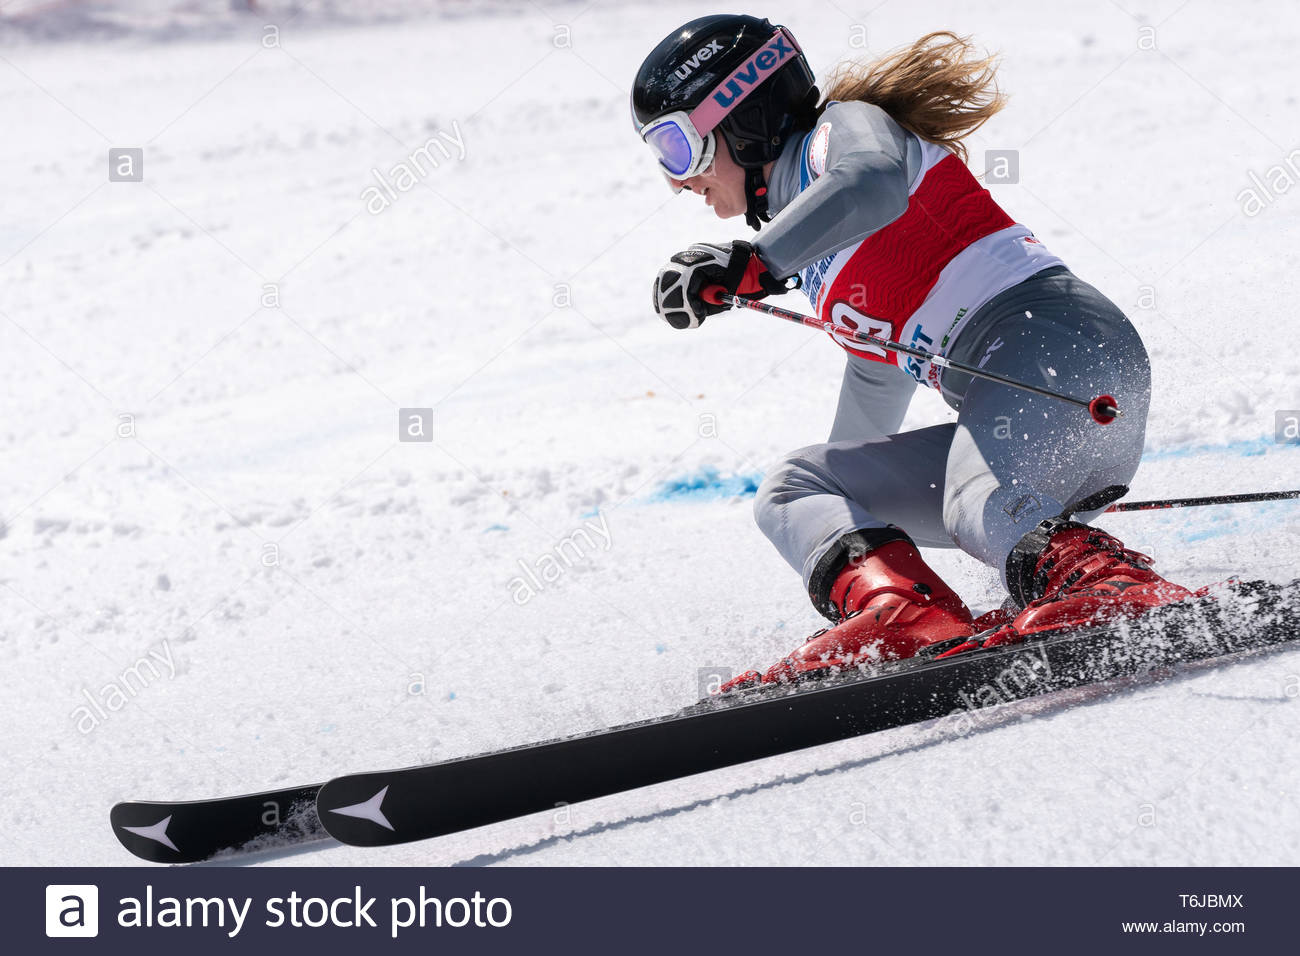 KAMCHATKA PENINSULA, RUSSIAN FEDERATION - APRIL 1, 2019: Russian Women's Alpine Skiing Championship, giant slalom. Mountain skier Fokina Milena (Kamch - Stock Image